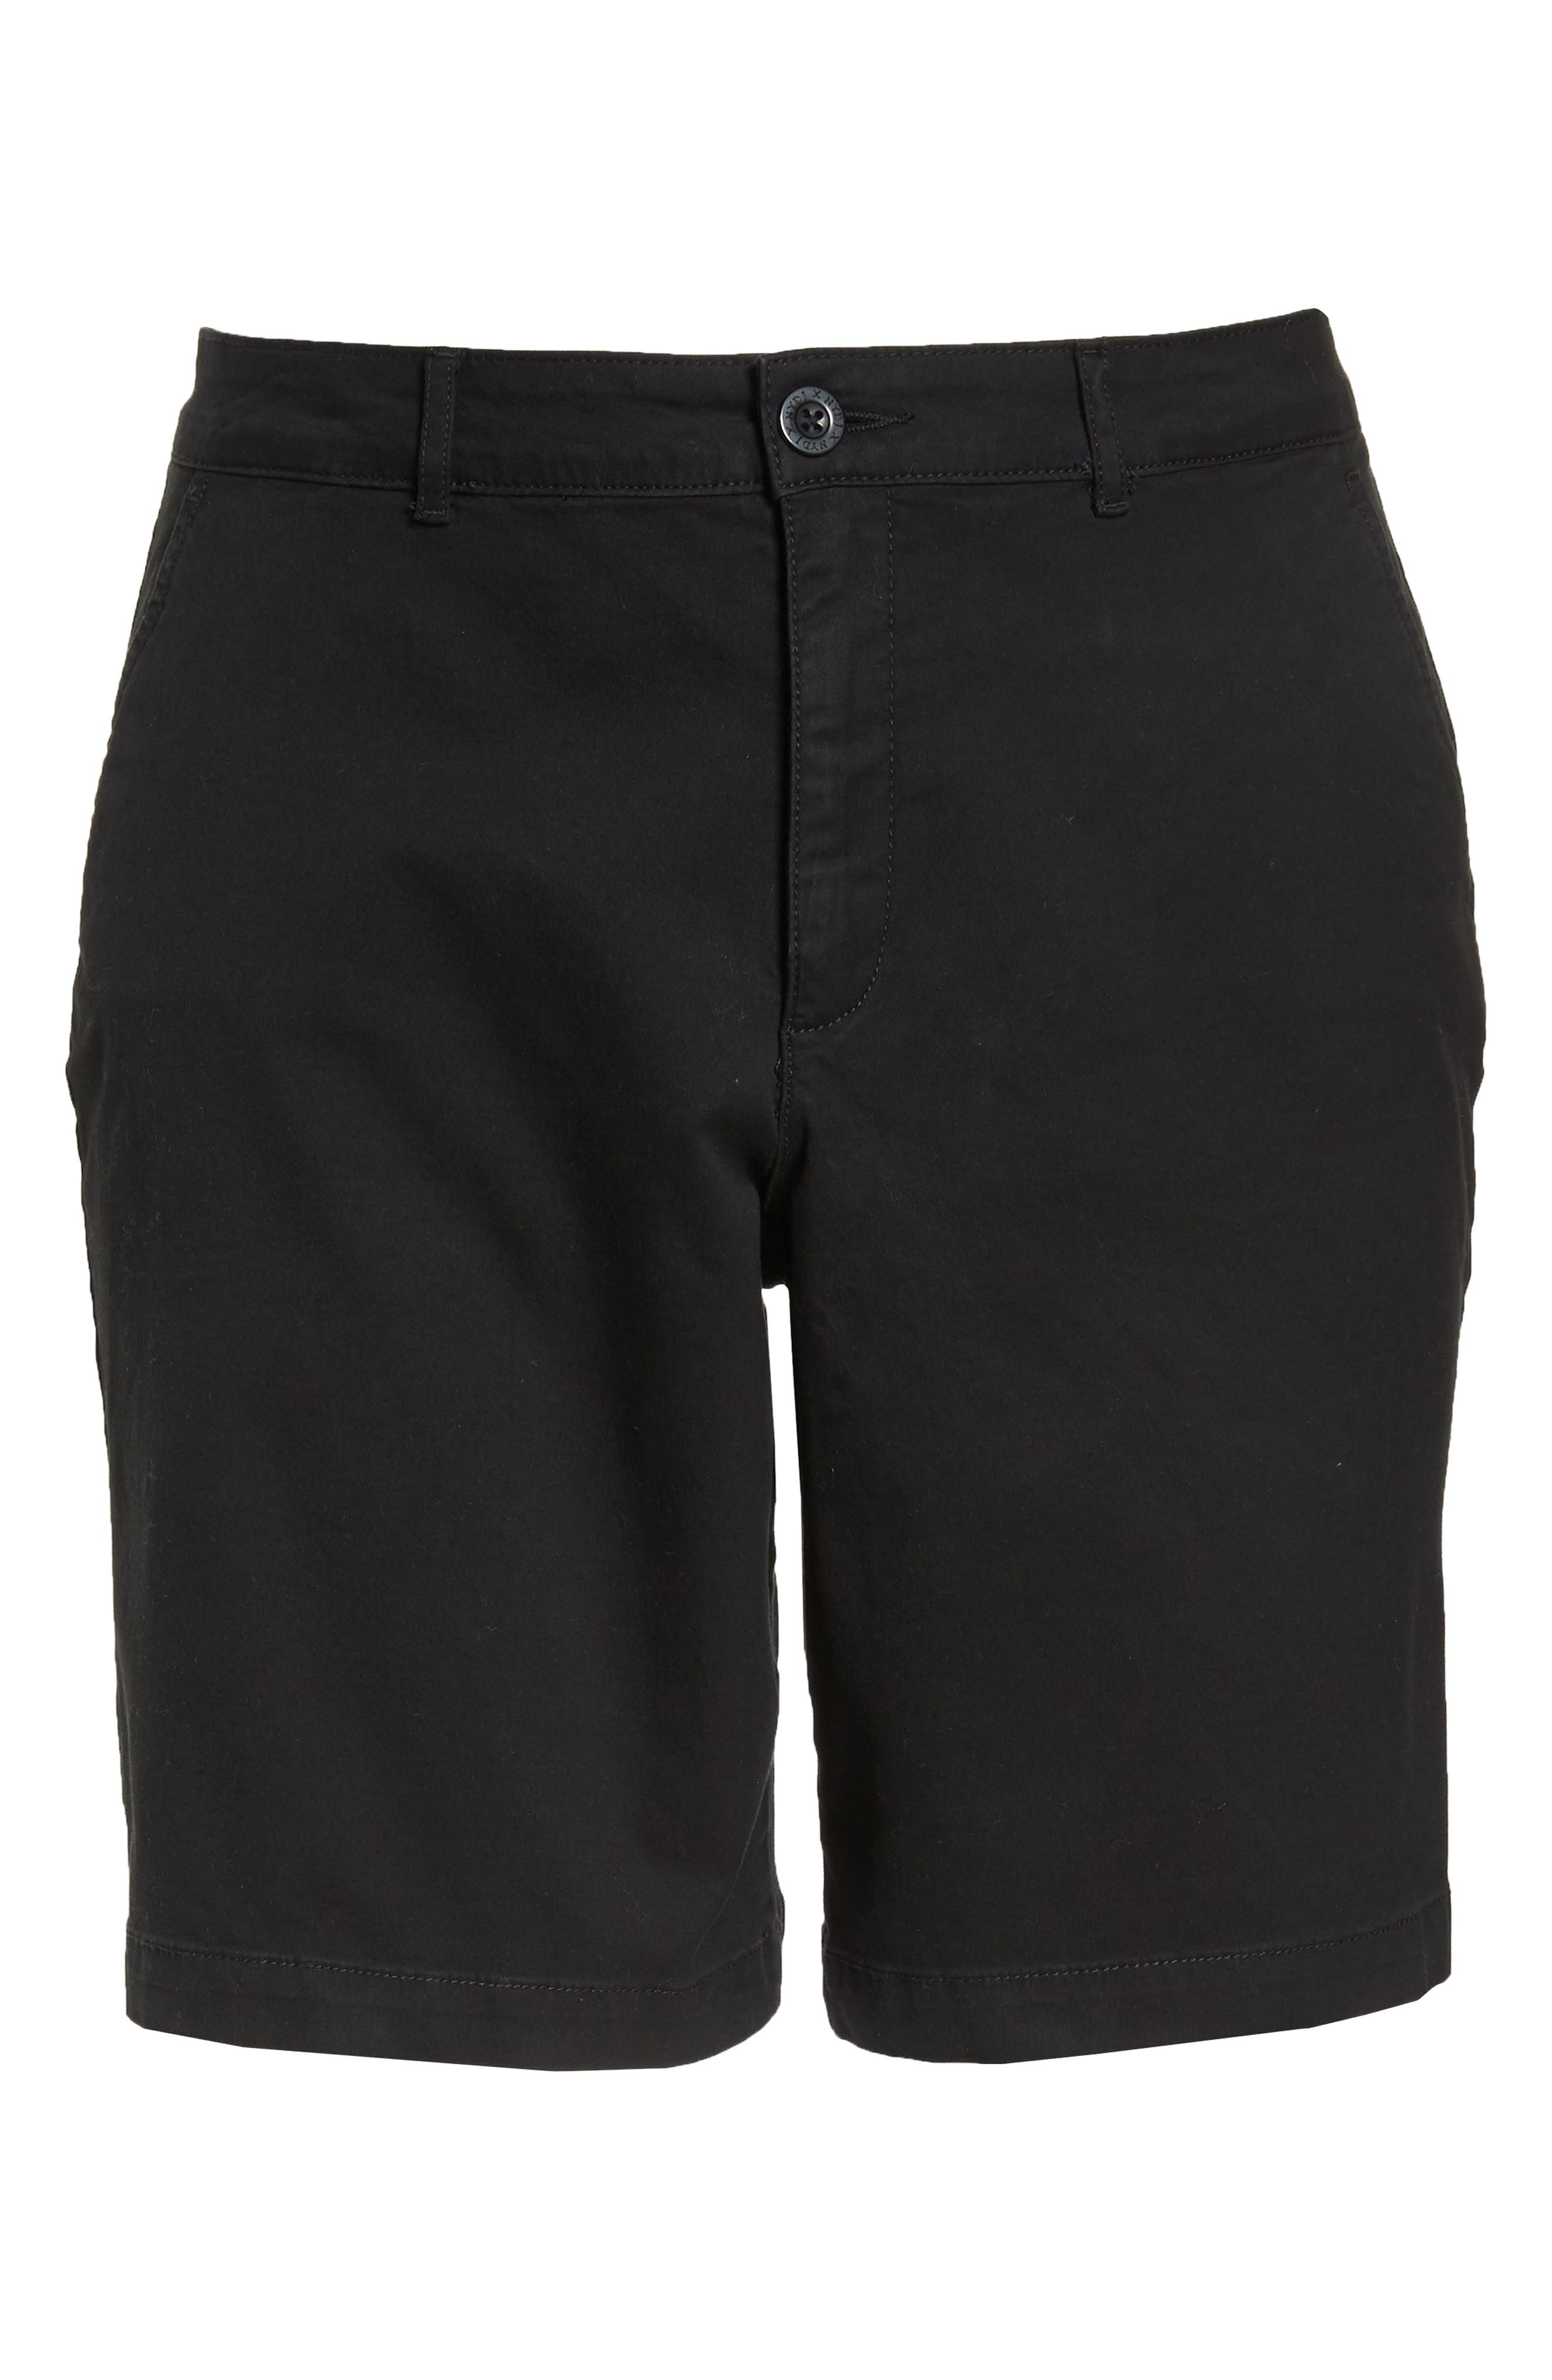 Stretch Twill Bermuda Shorts,                             Alternate thumbnail 6, color,                             001